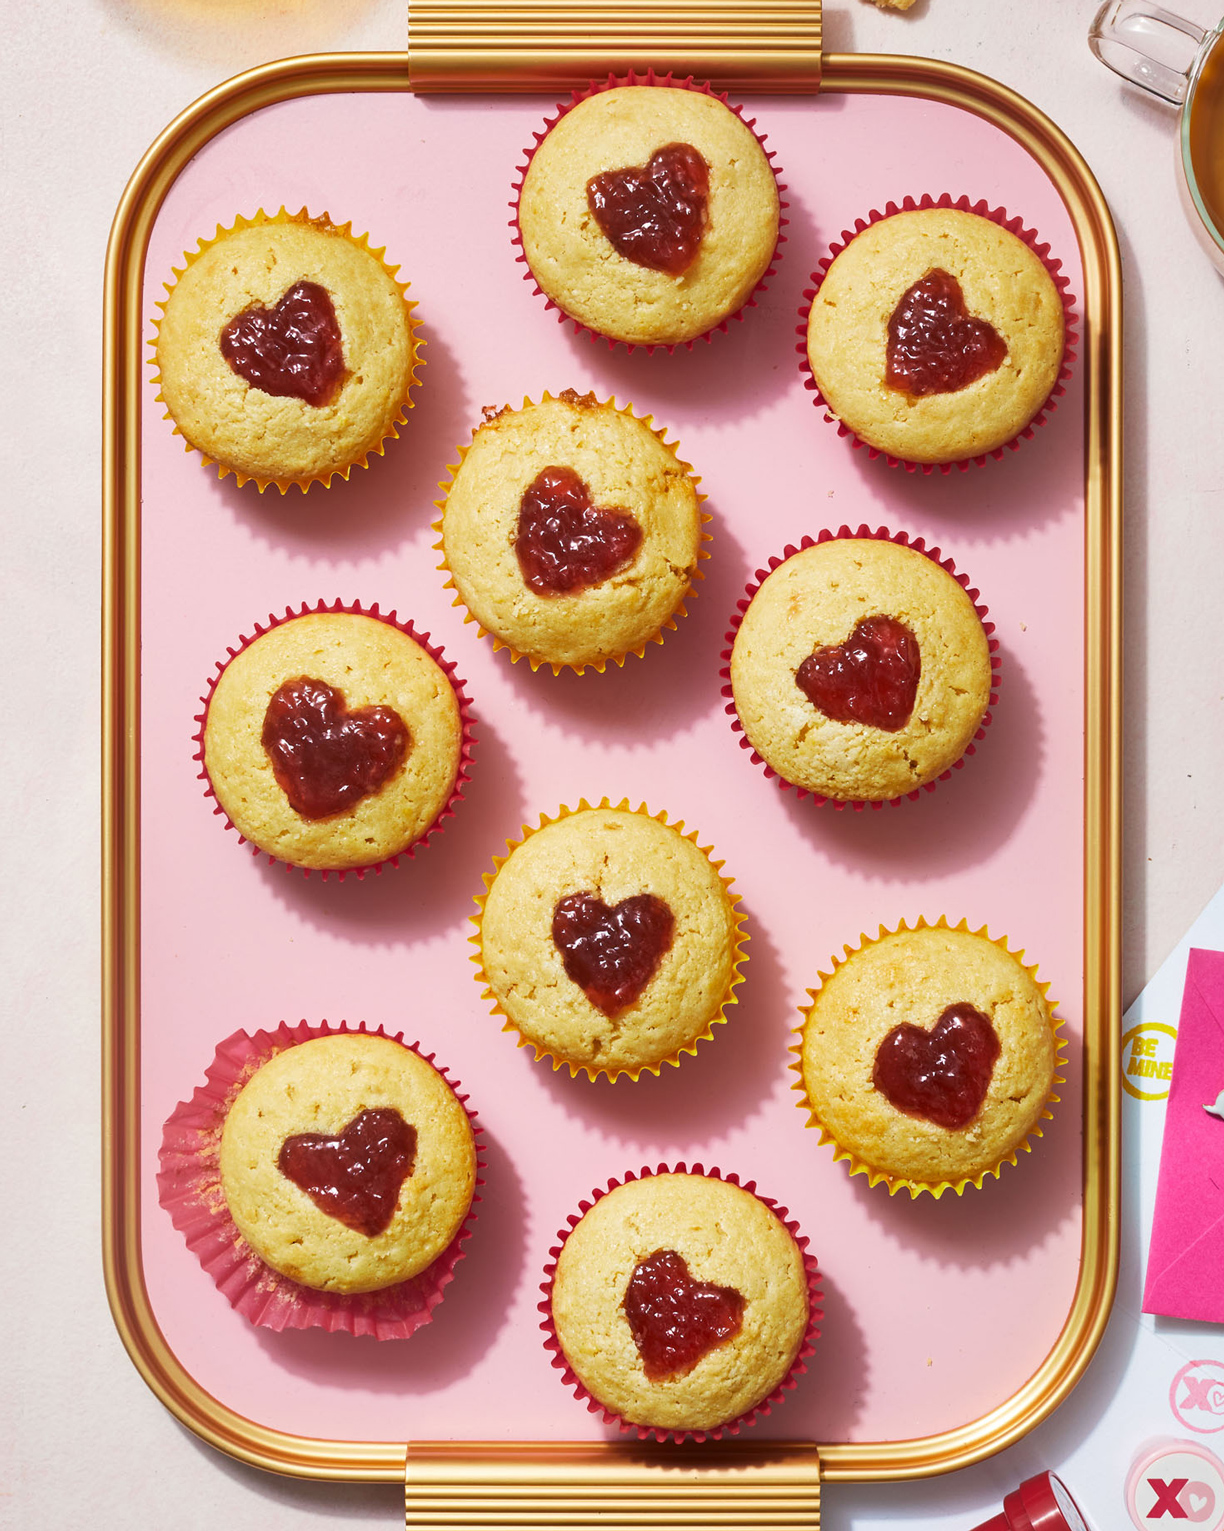 You're-My-Jam Muffins